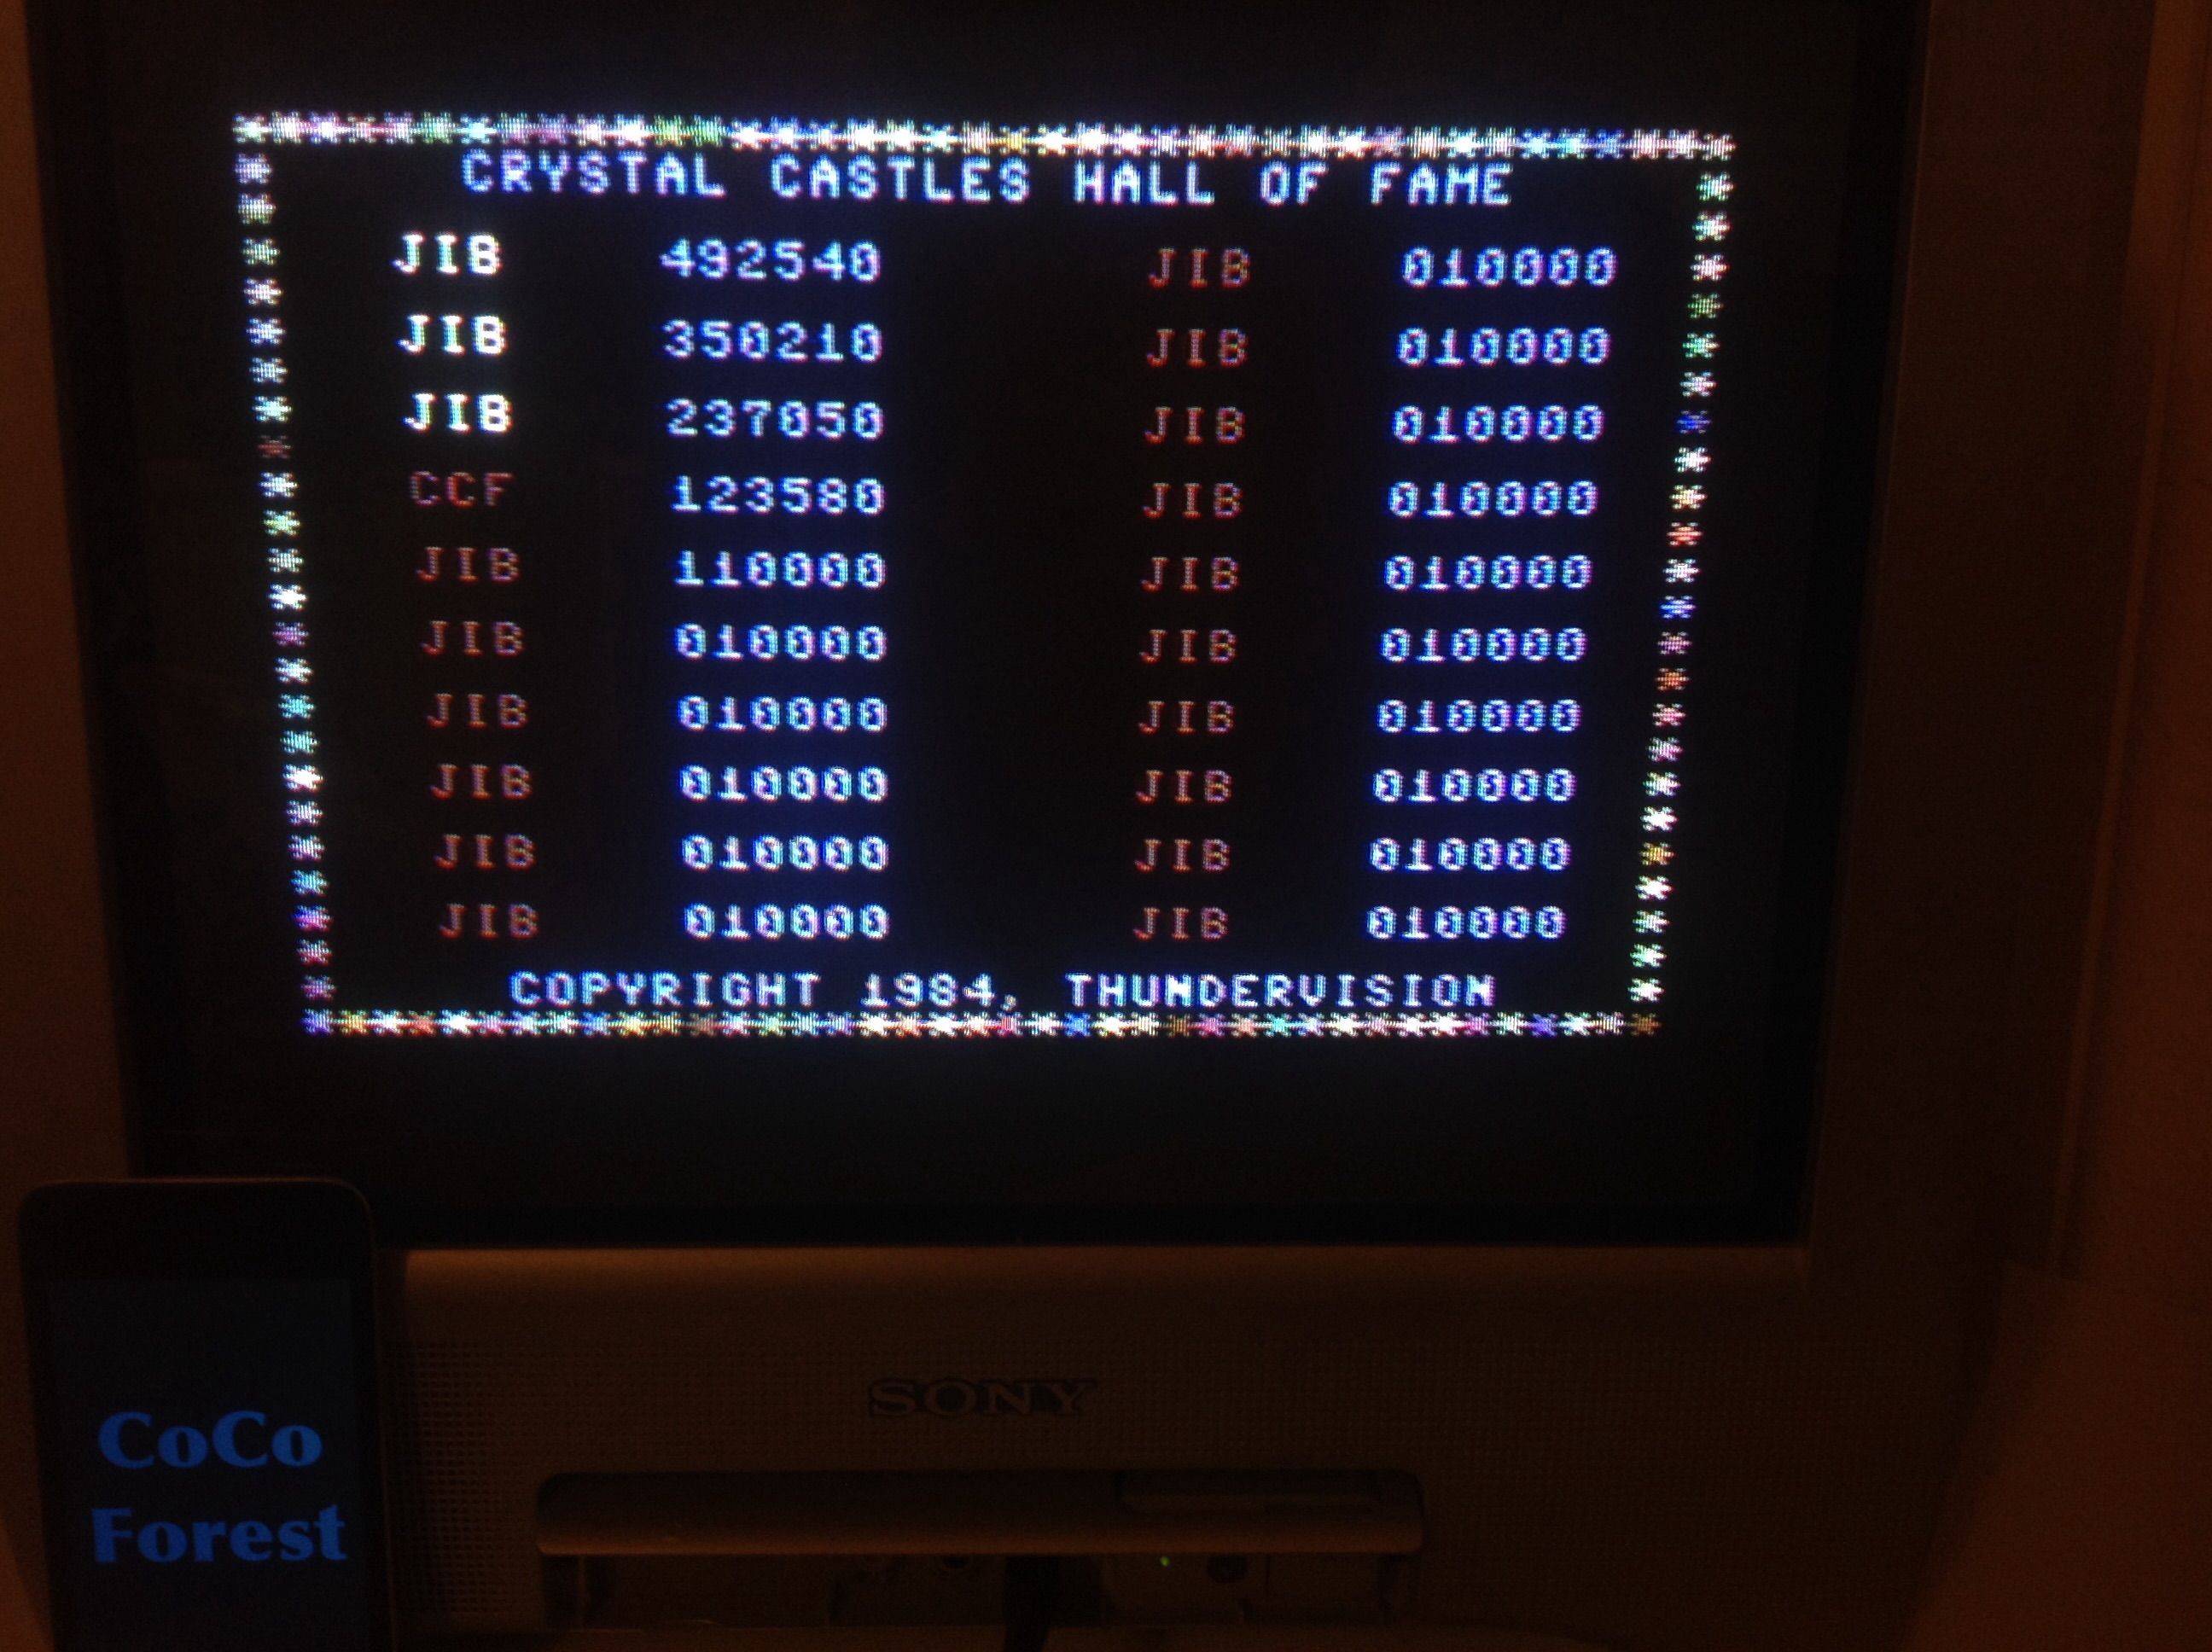 CoCoForest: Crystal Castles [Thundervision] (Commodore 64) 123,580 points on 2015-03-16 13:52:54